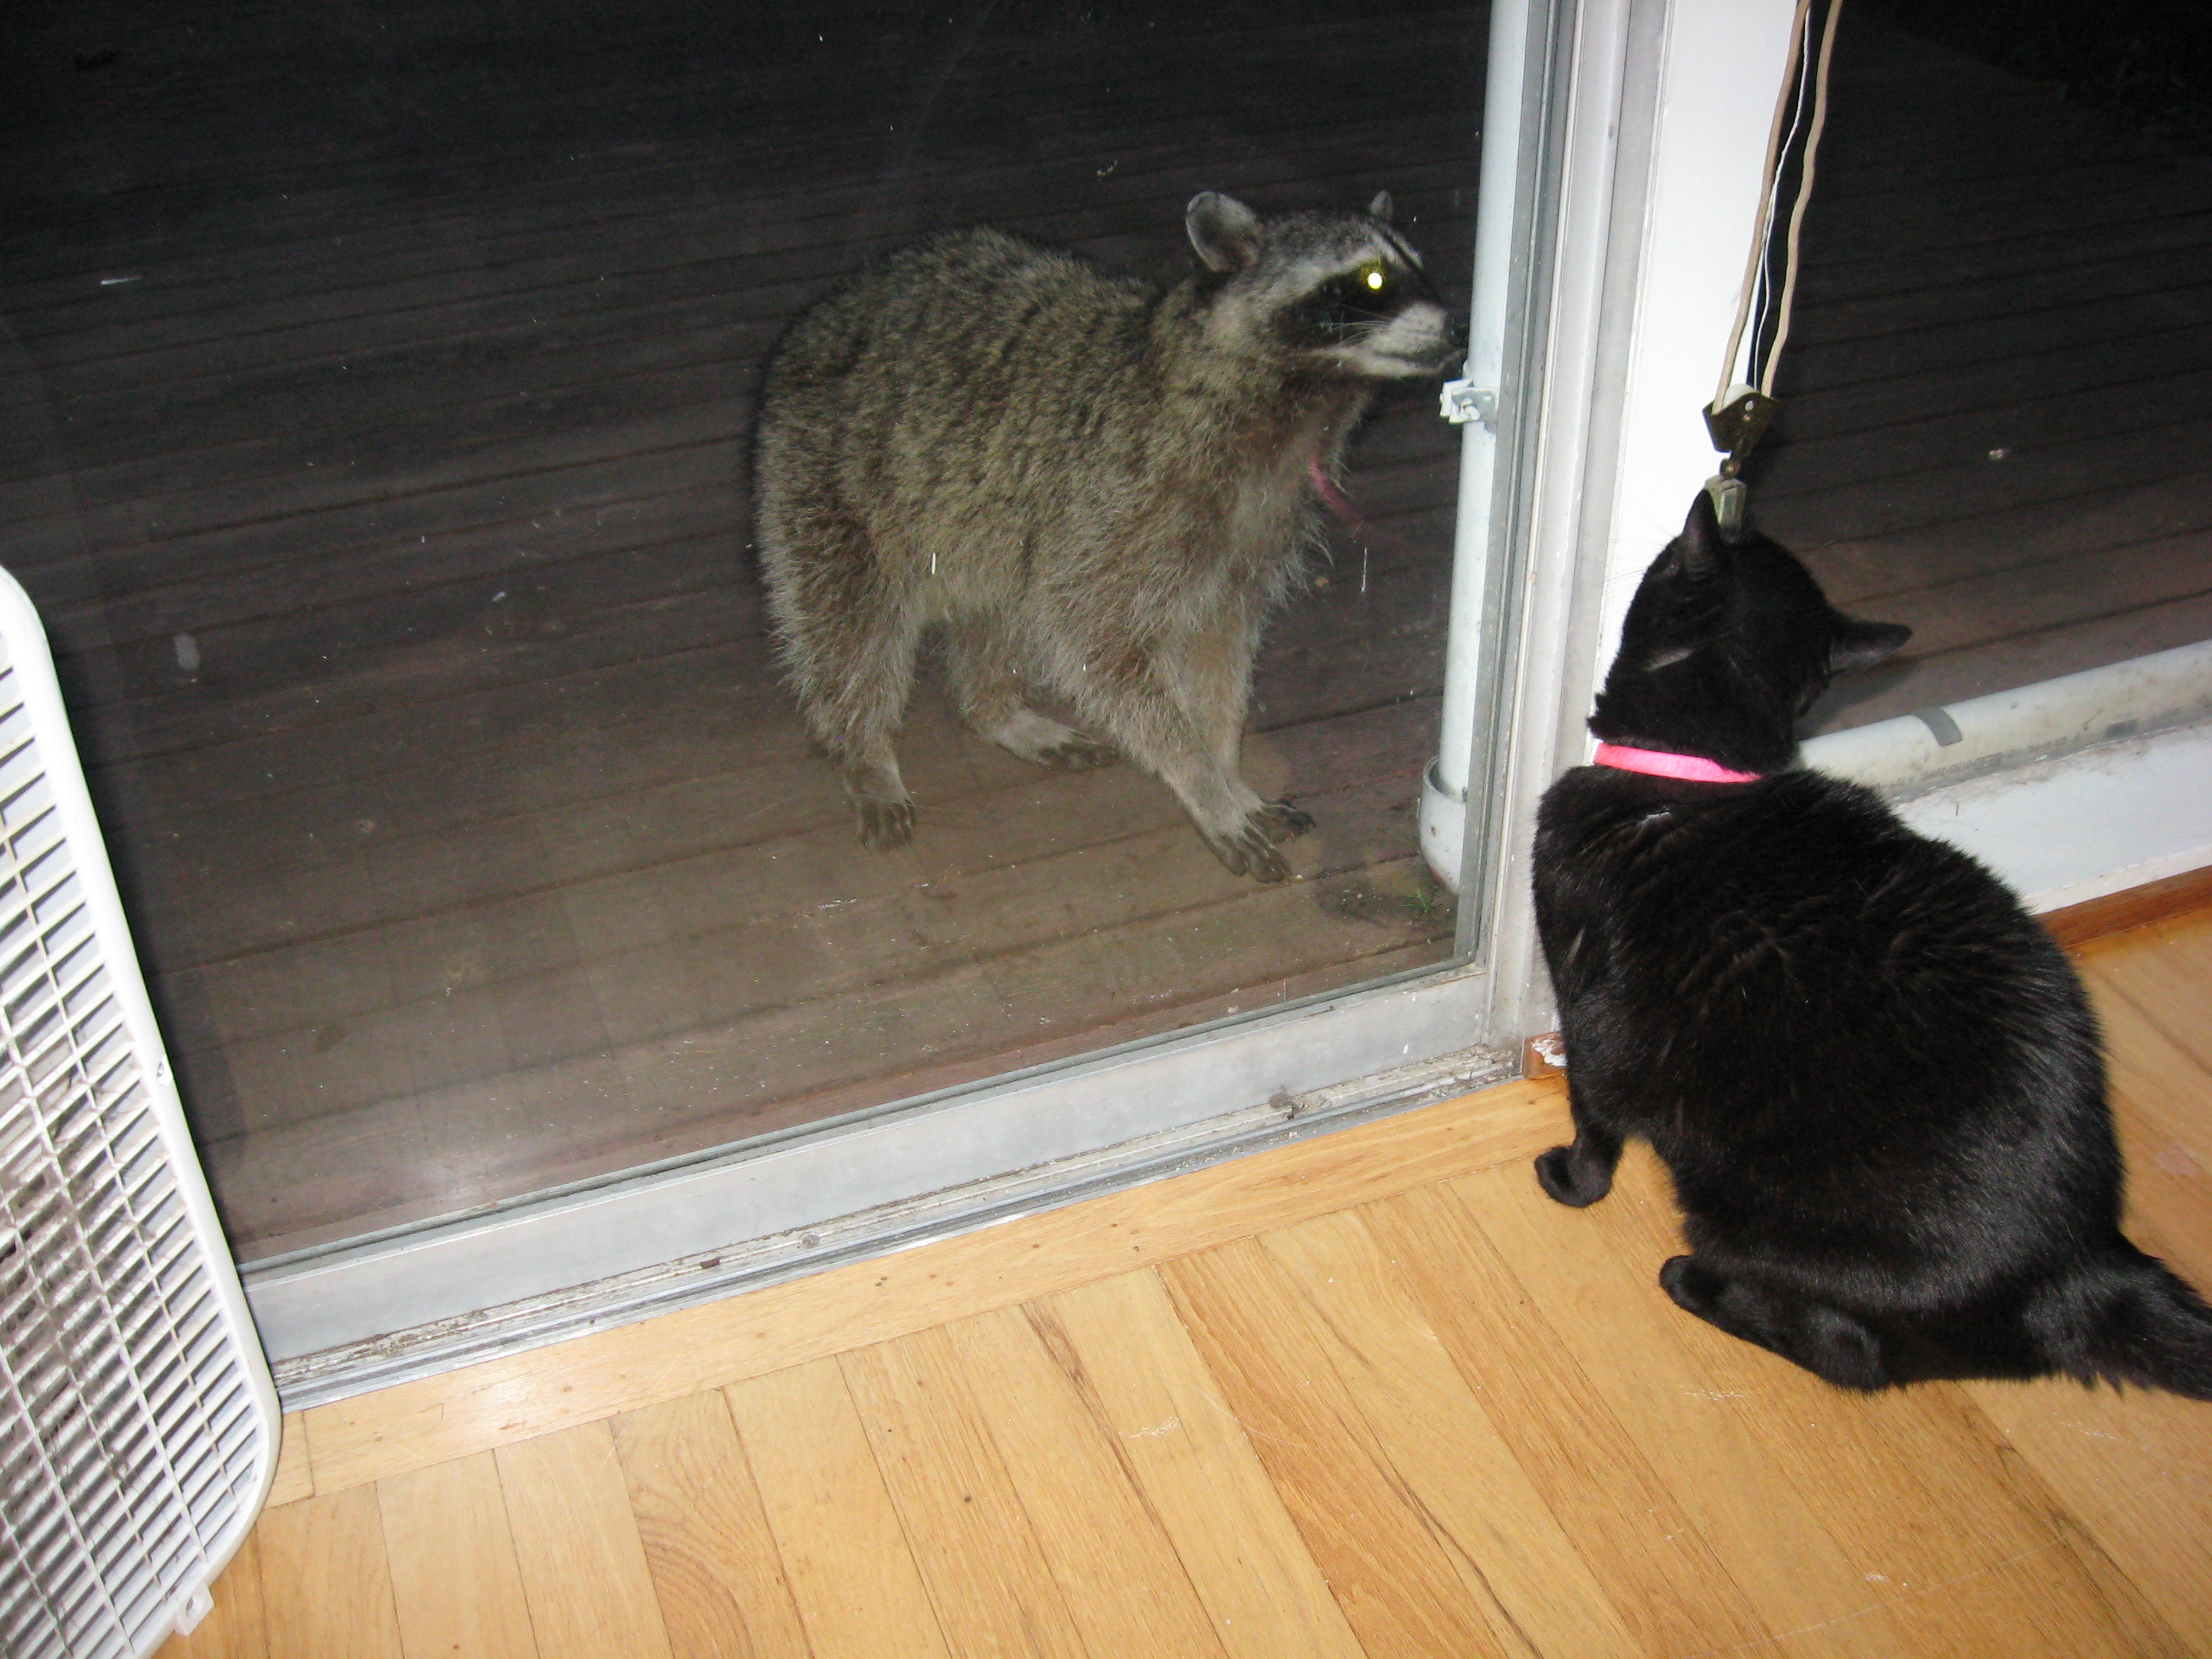 Meerclar watching a raccoon.